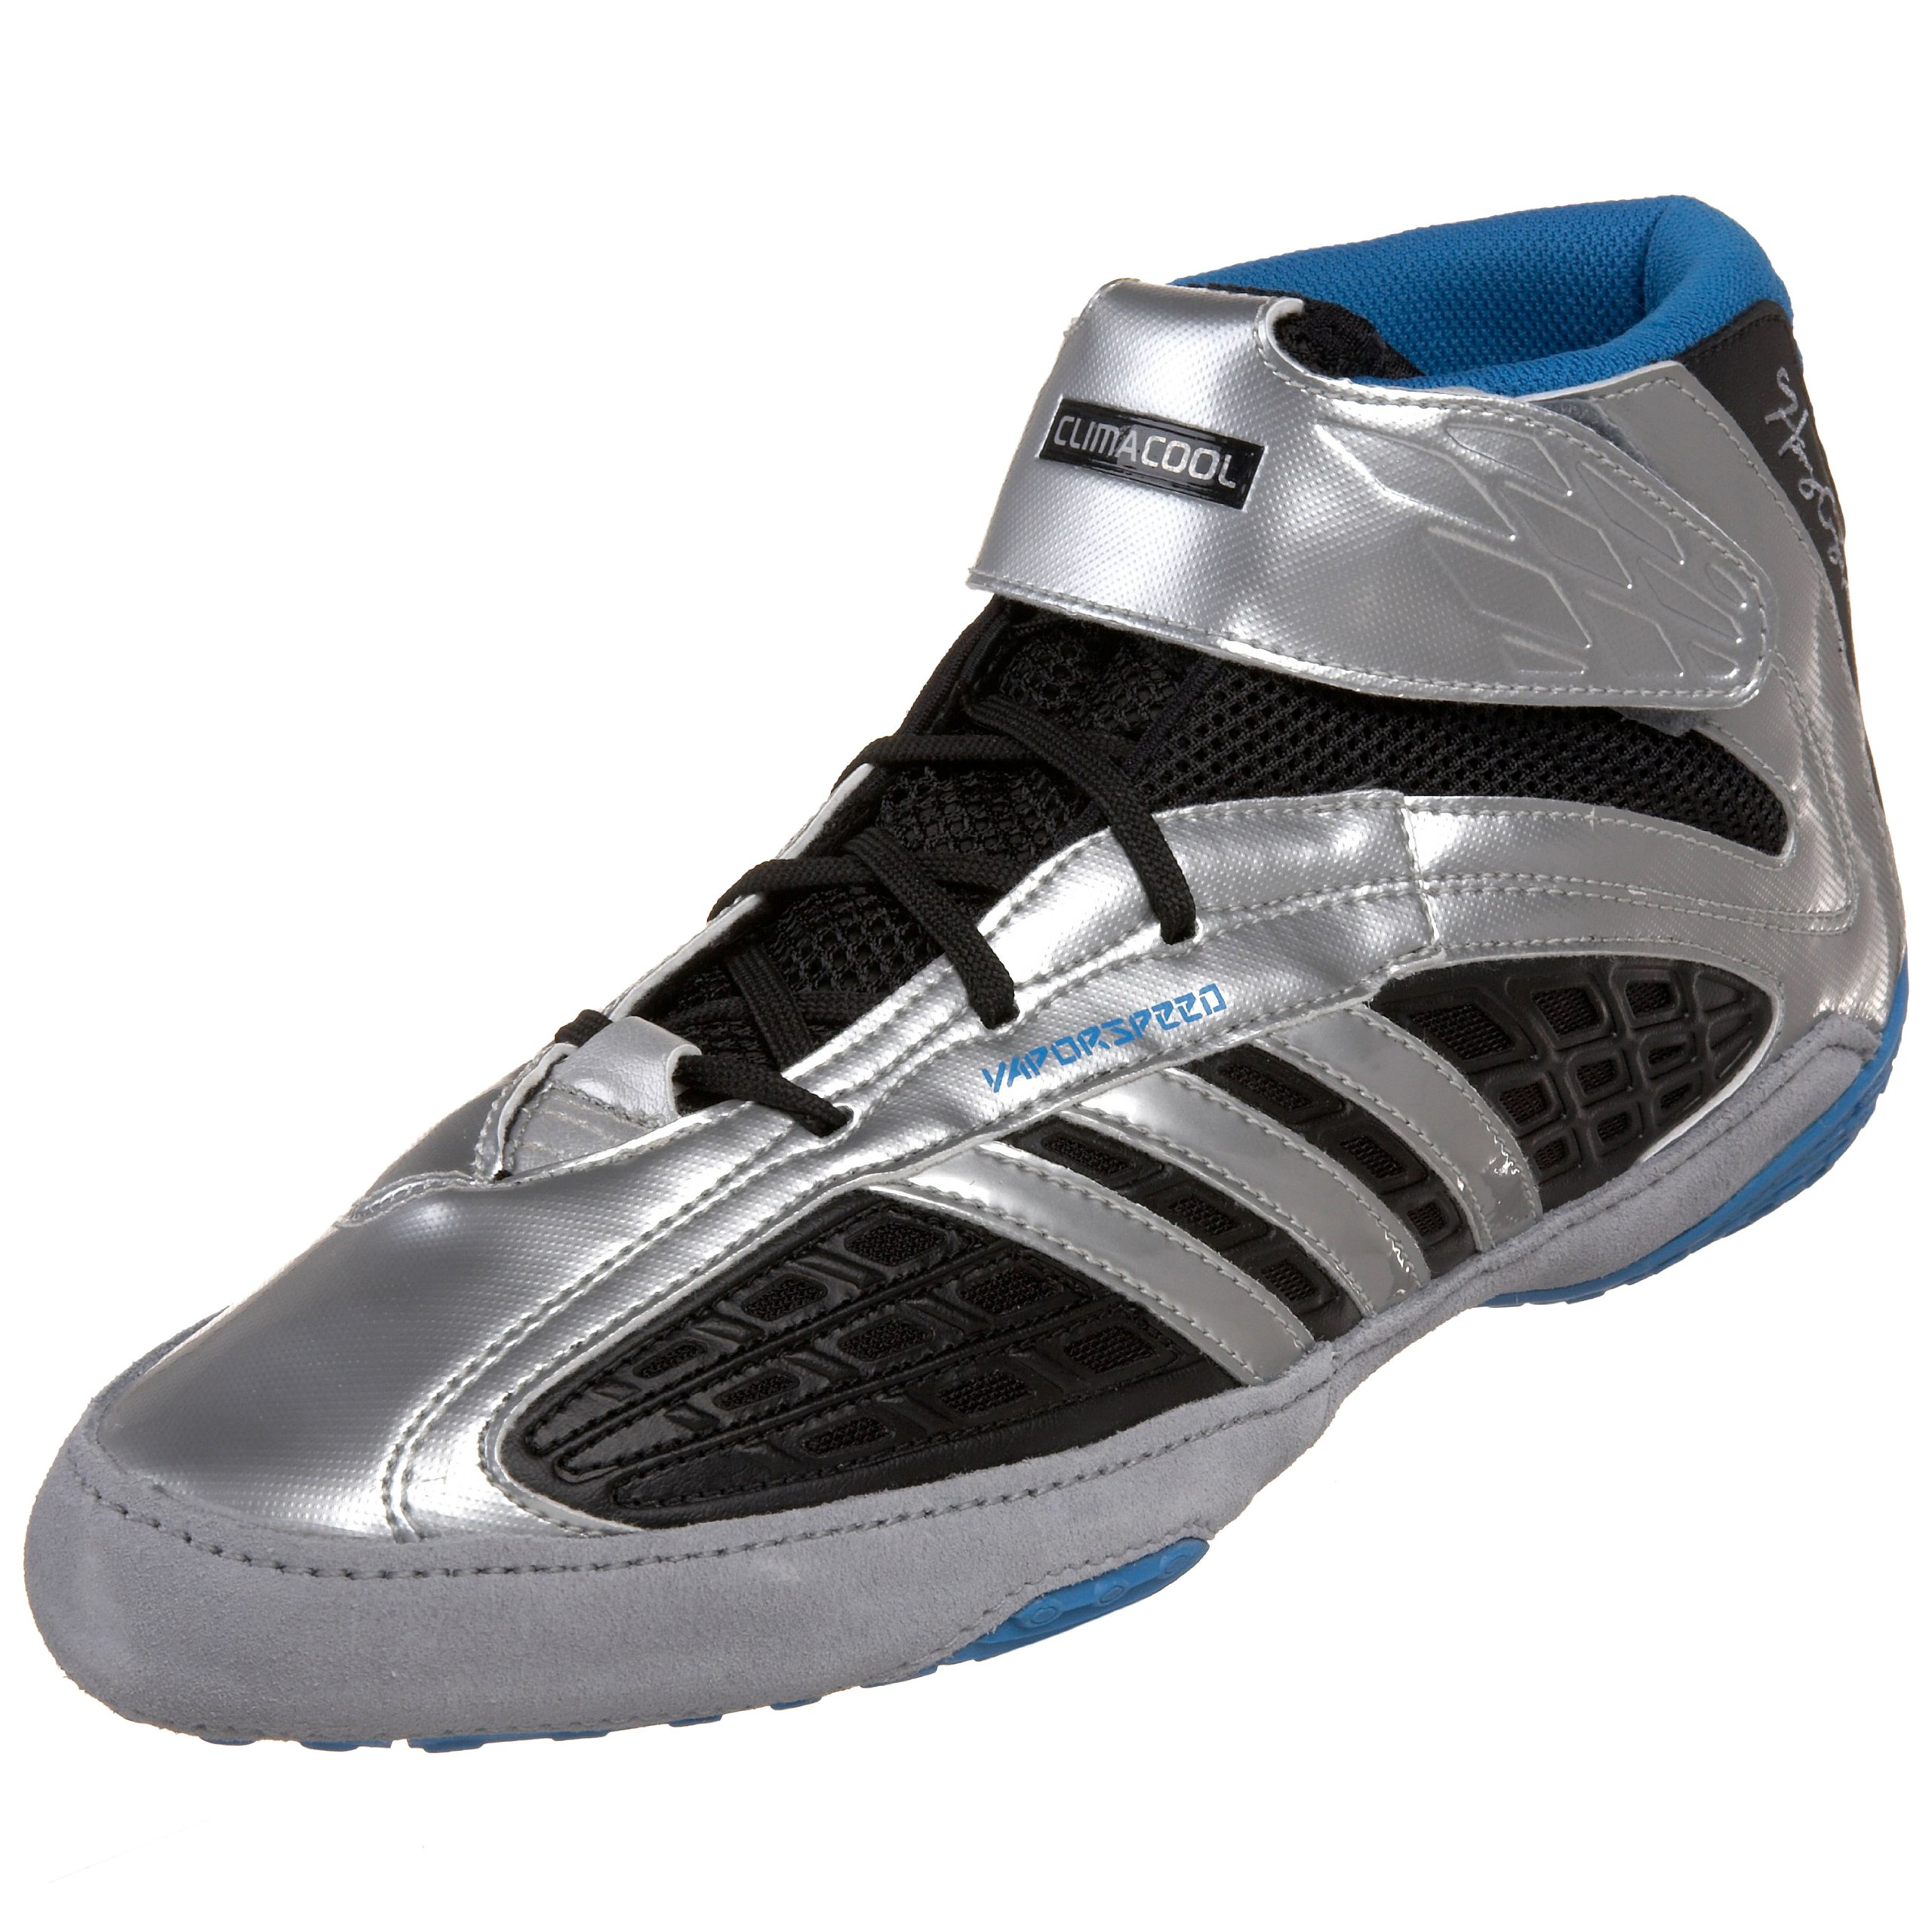 adidas Men's Vaporspeed II Henry Cejudo Wrestling Shoe,Black/Silver/Pool,13 M US by adidas